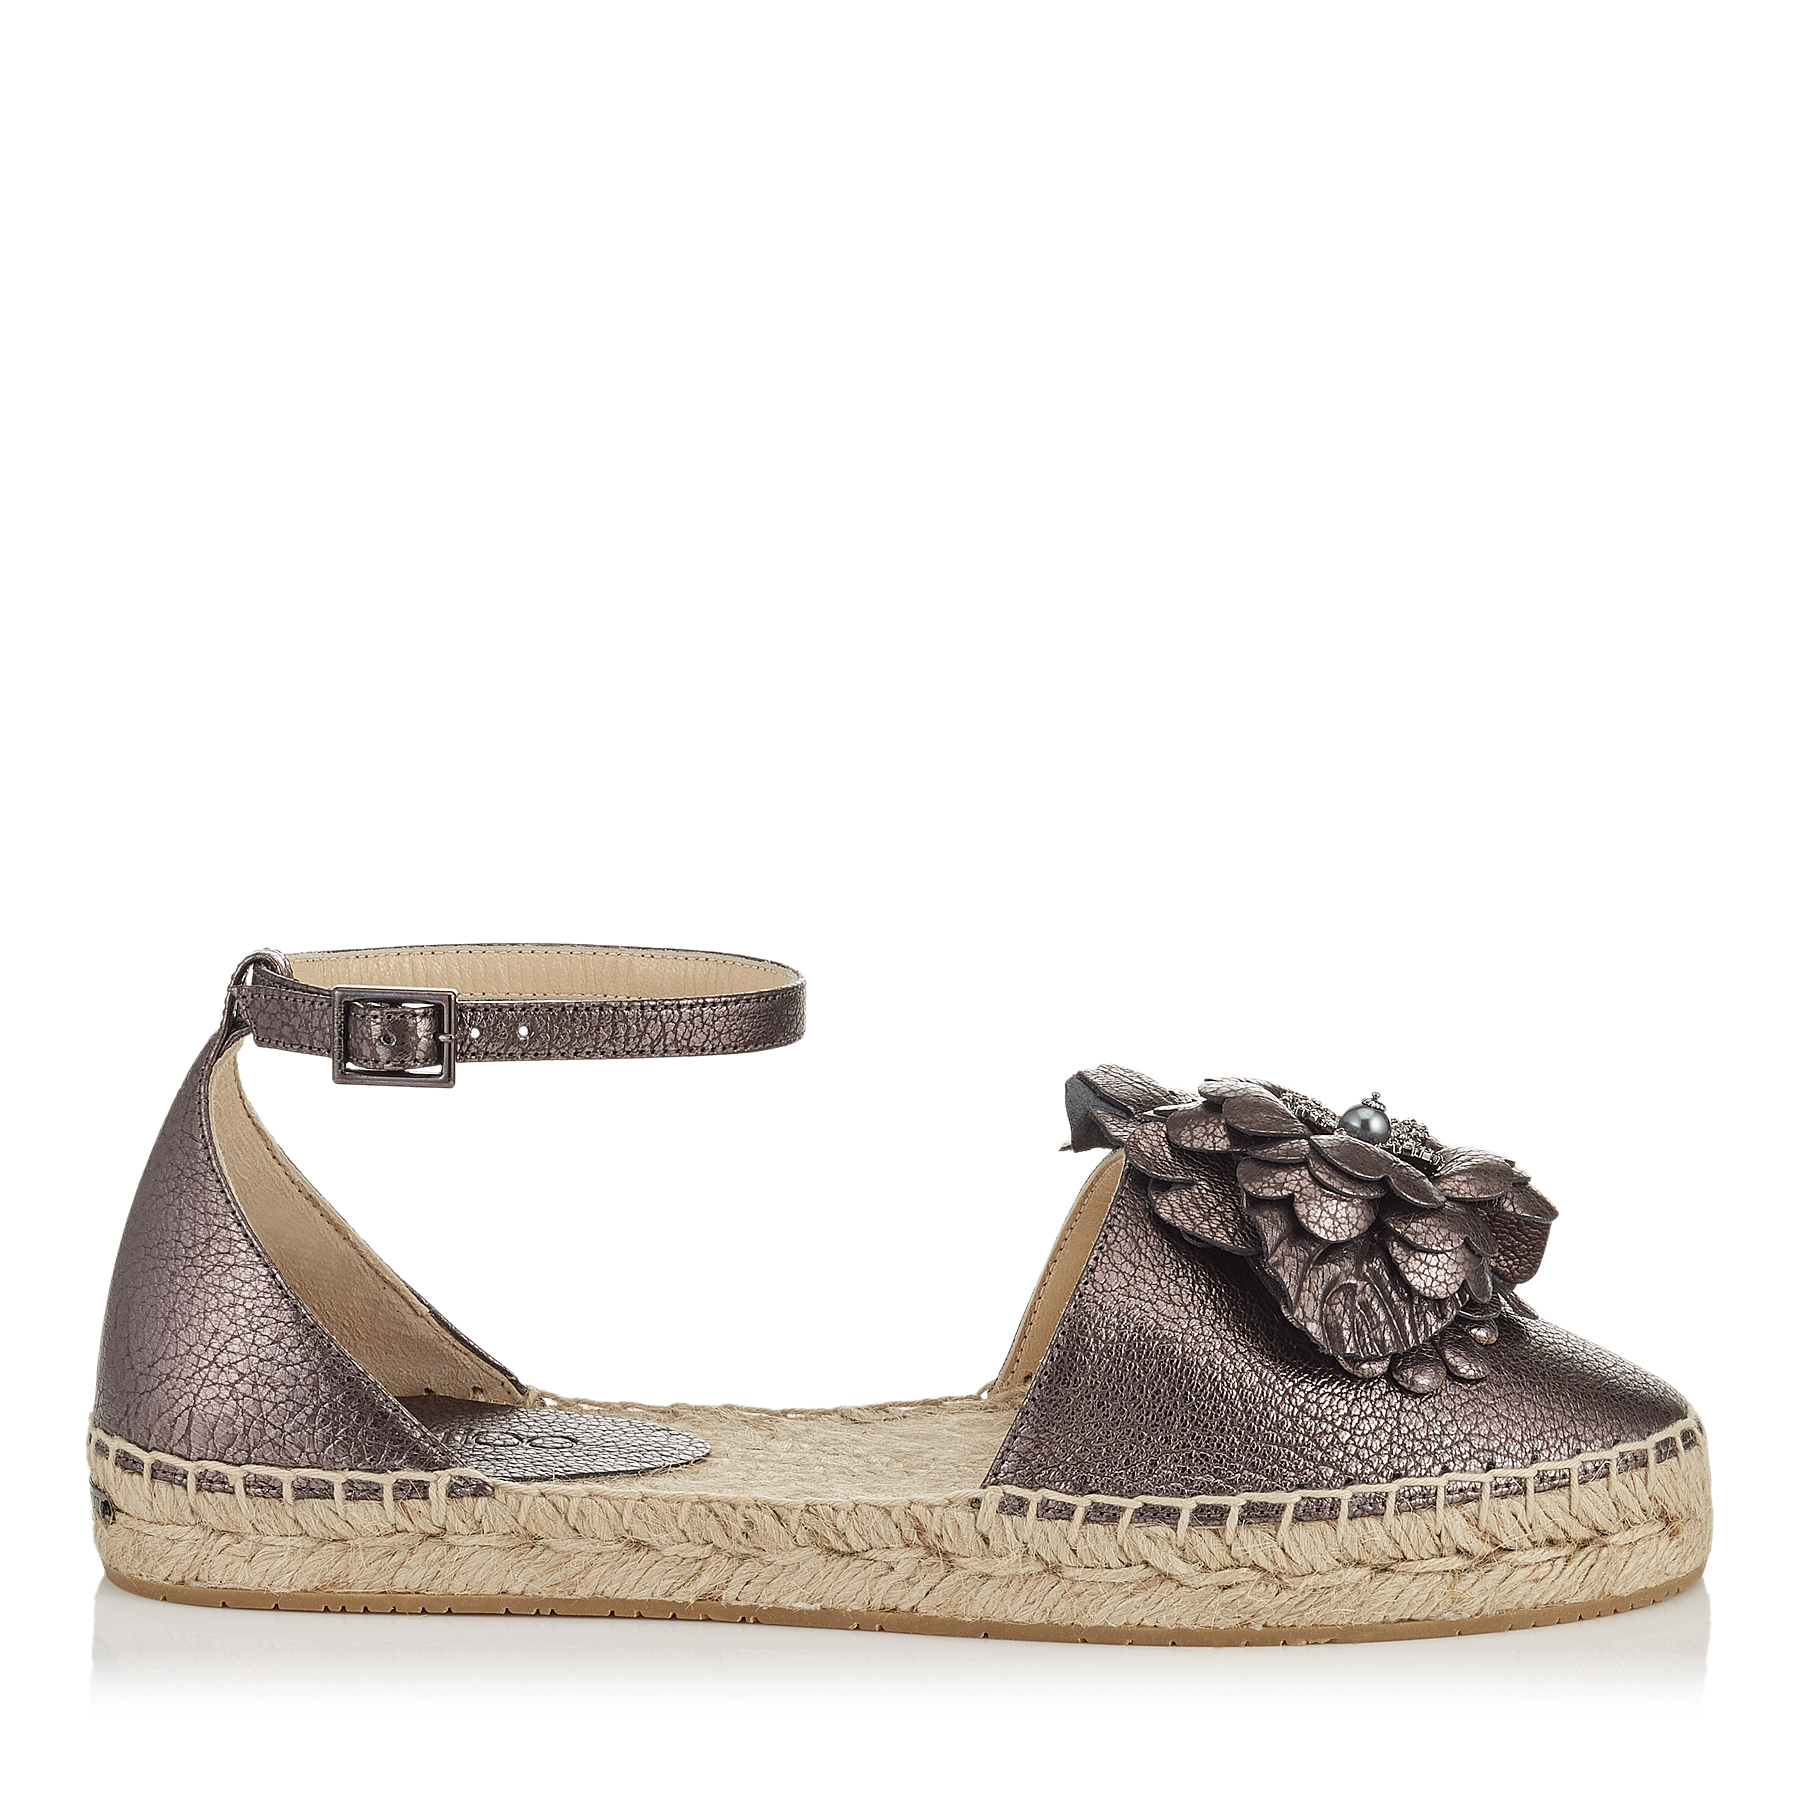 DYLAN FLAT Light Mocha Metallic Softened Leather Espadrilles with Floral Applique